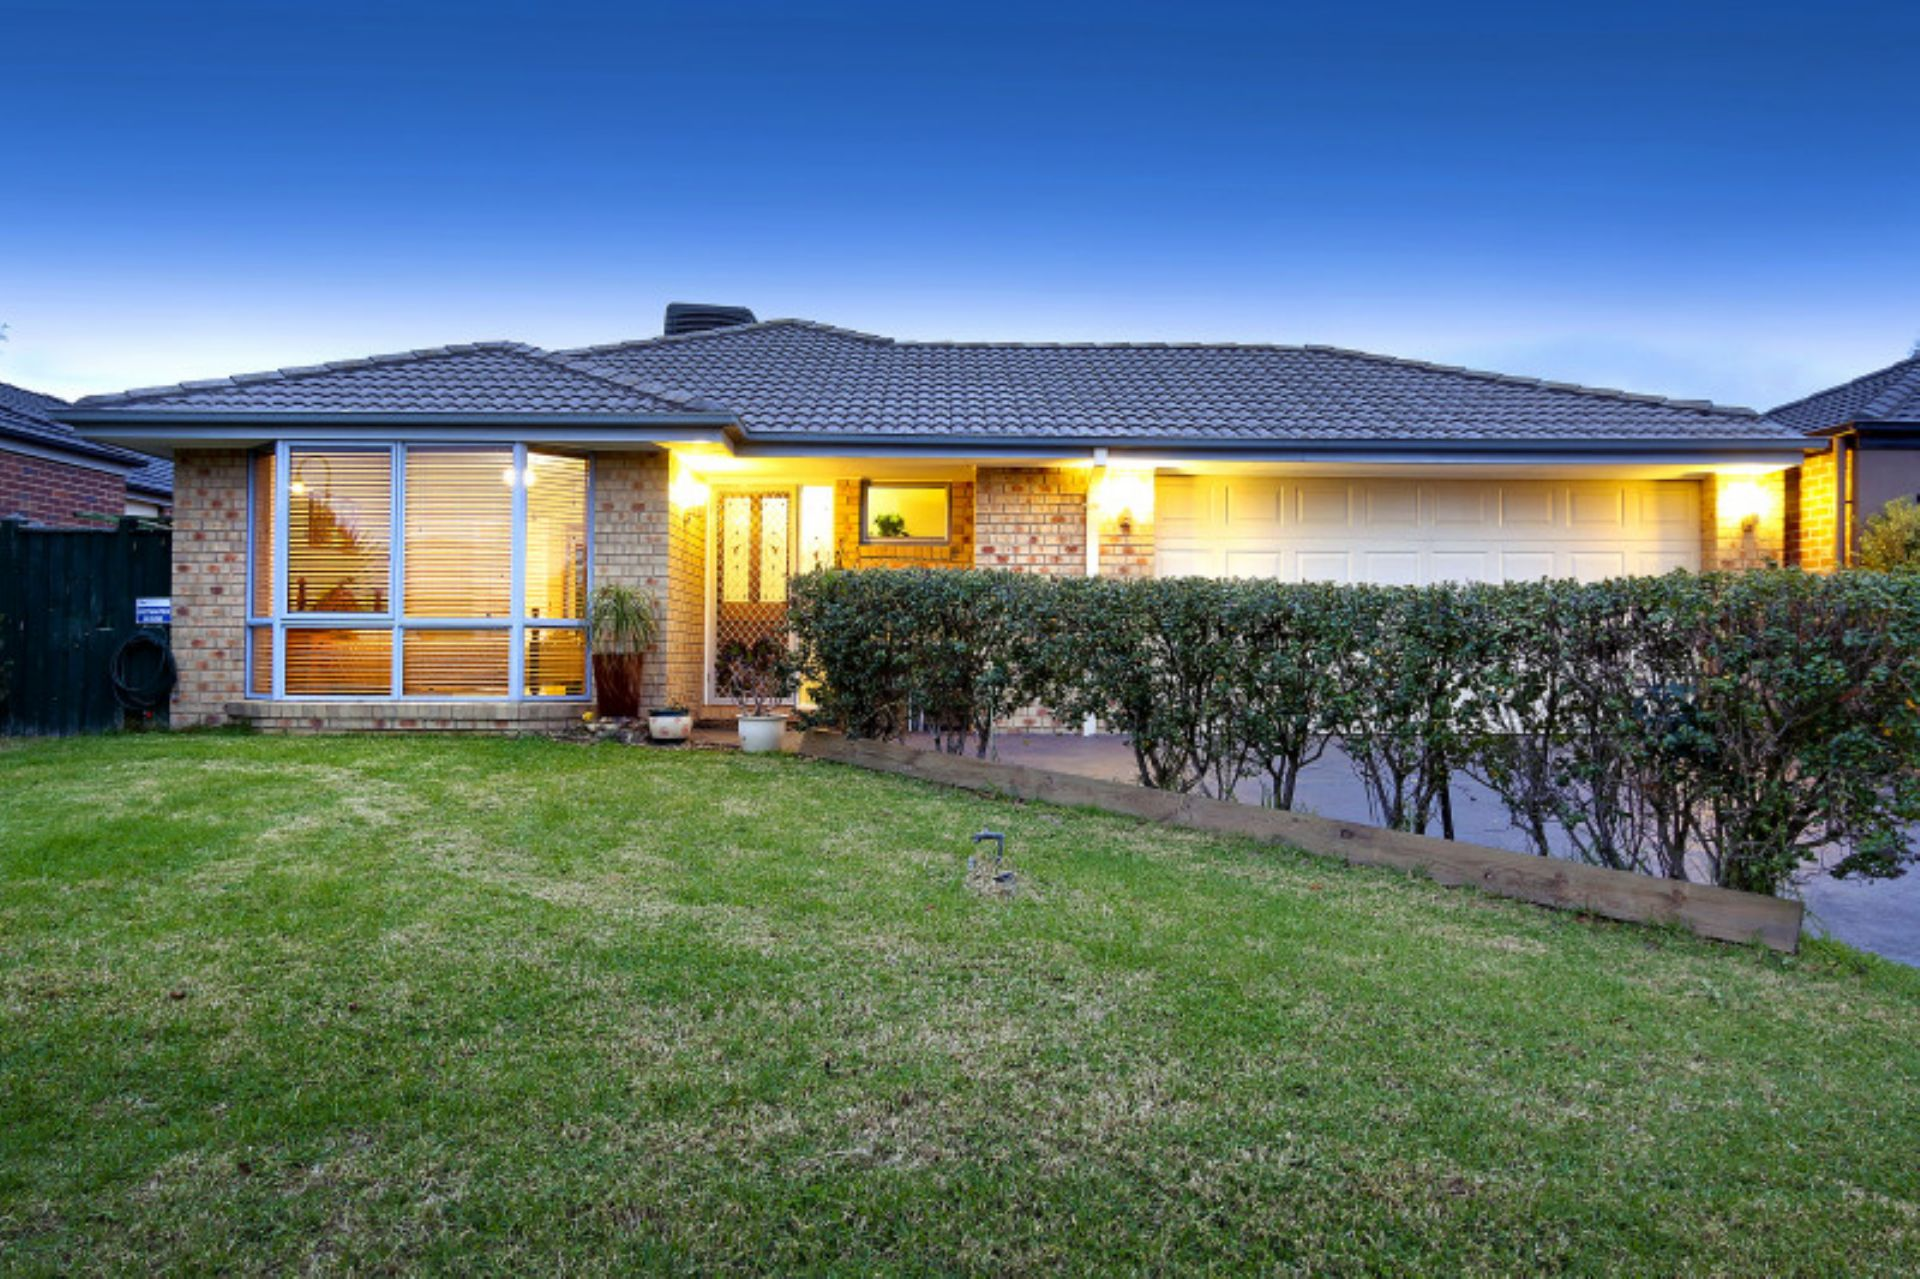 8 Trafalgar Square, MORNINGTON, VIC, 3931 - Image